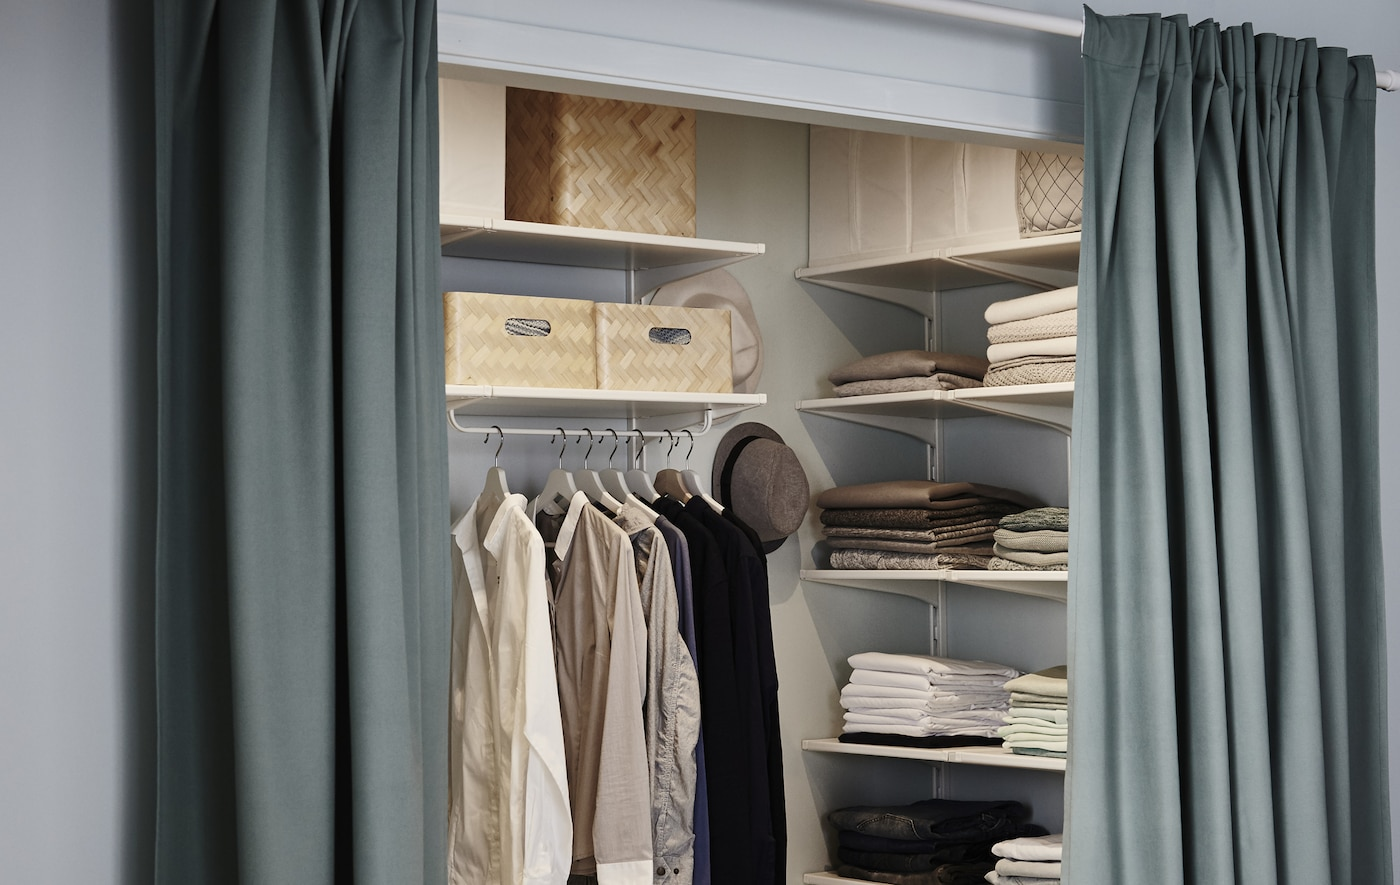 A walk-in closet gets the full treatment with lots of adjustable storage, some fresh paint and a curtain to close it off from the bedroom.